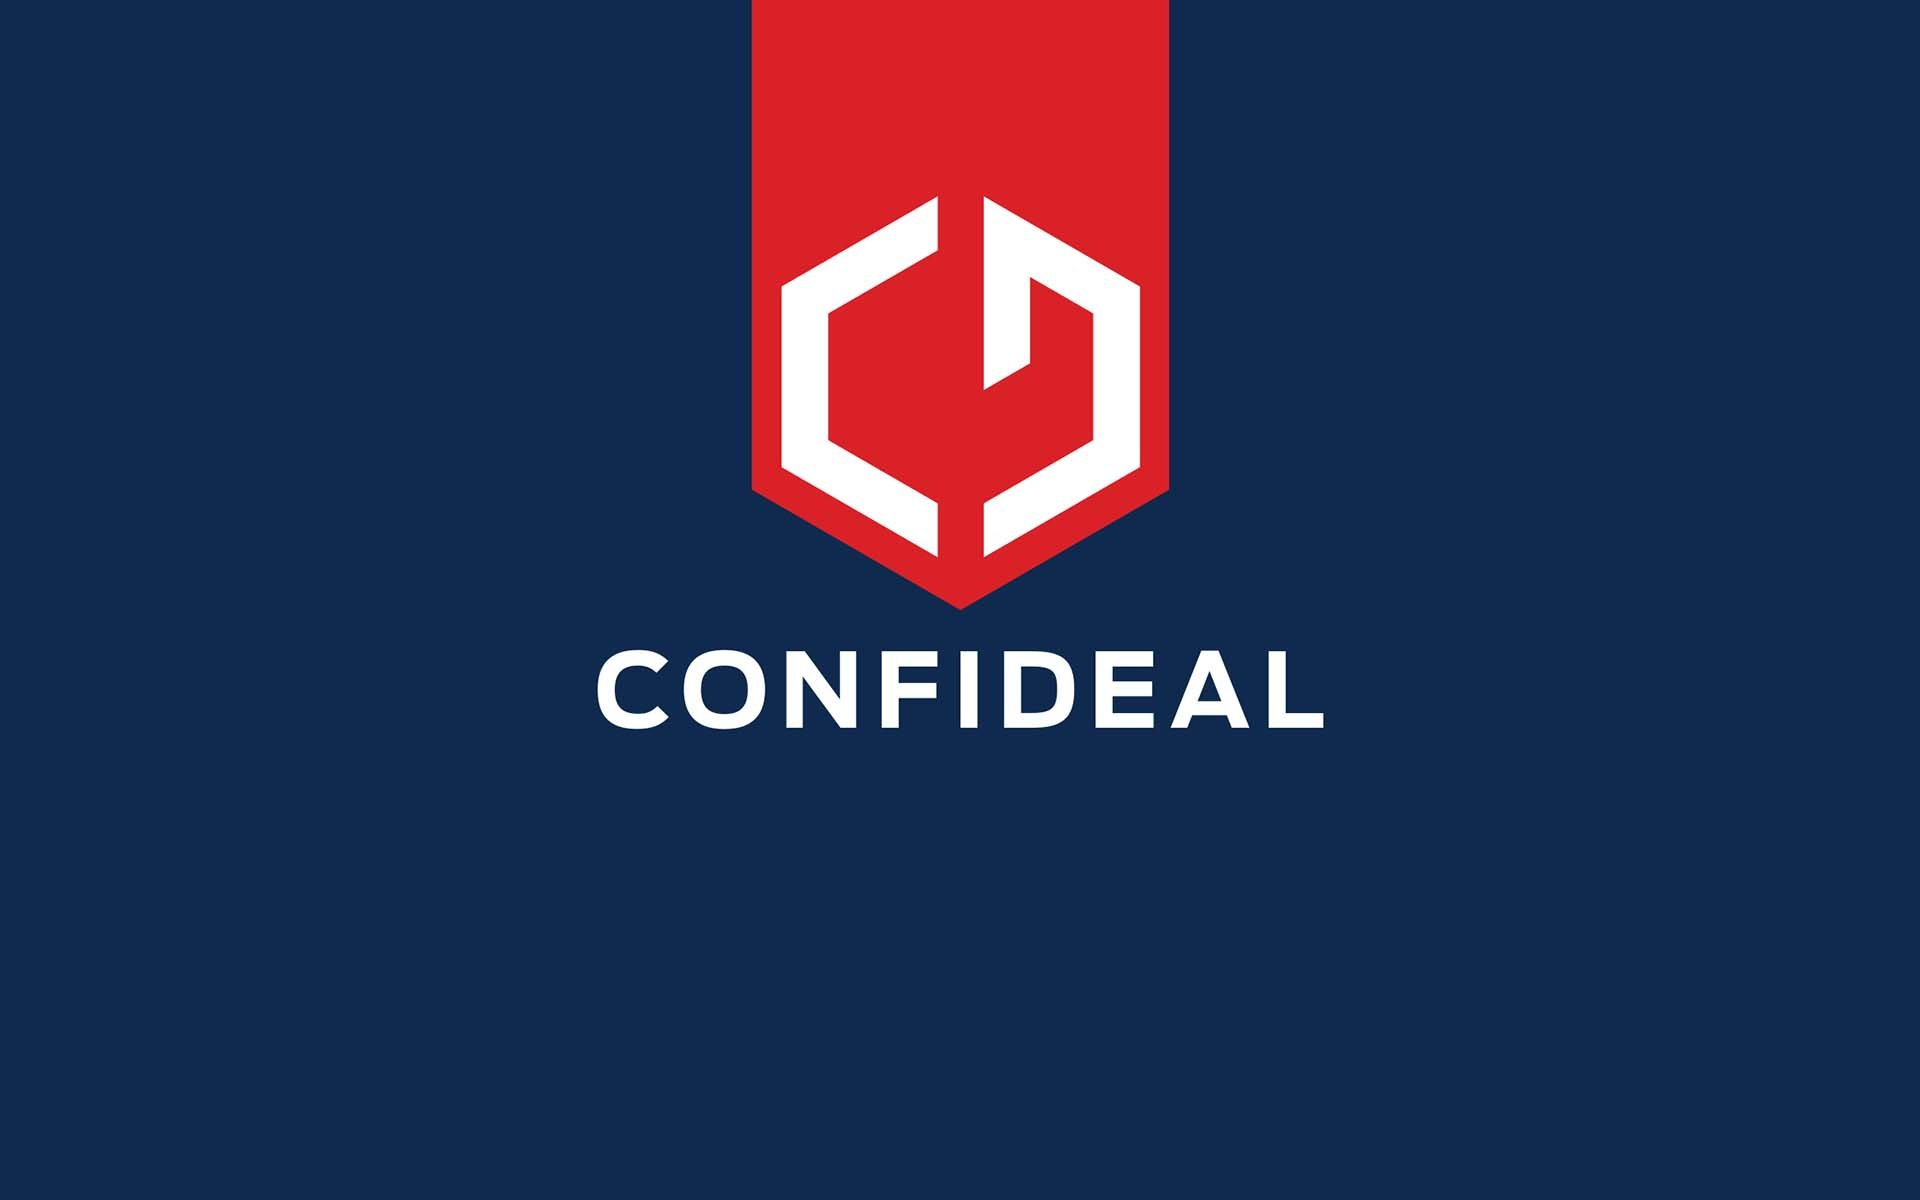 Built-in Arbitration System is the Hallmark of Confideal